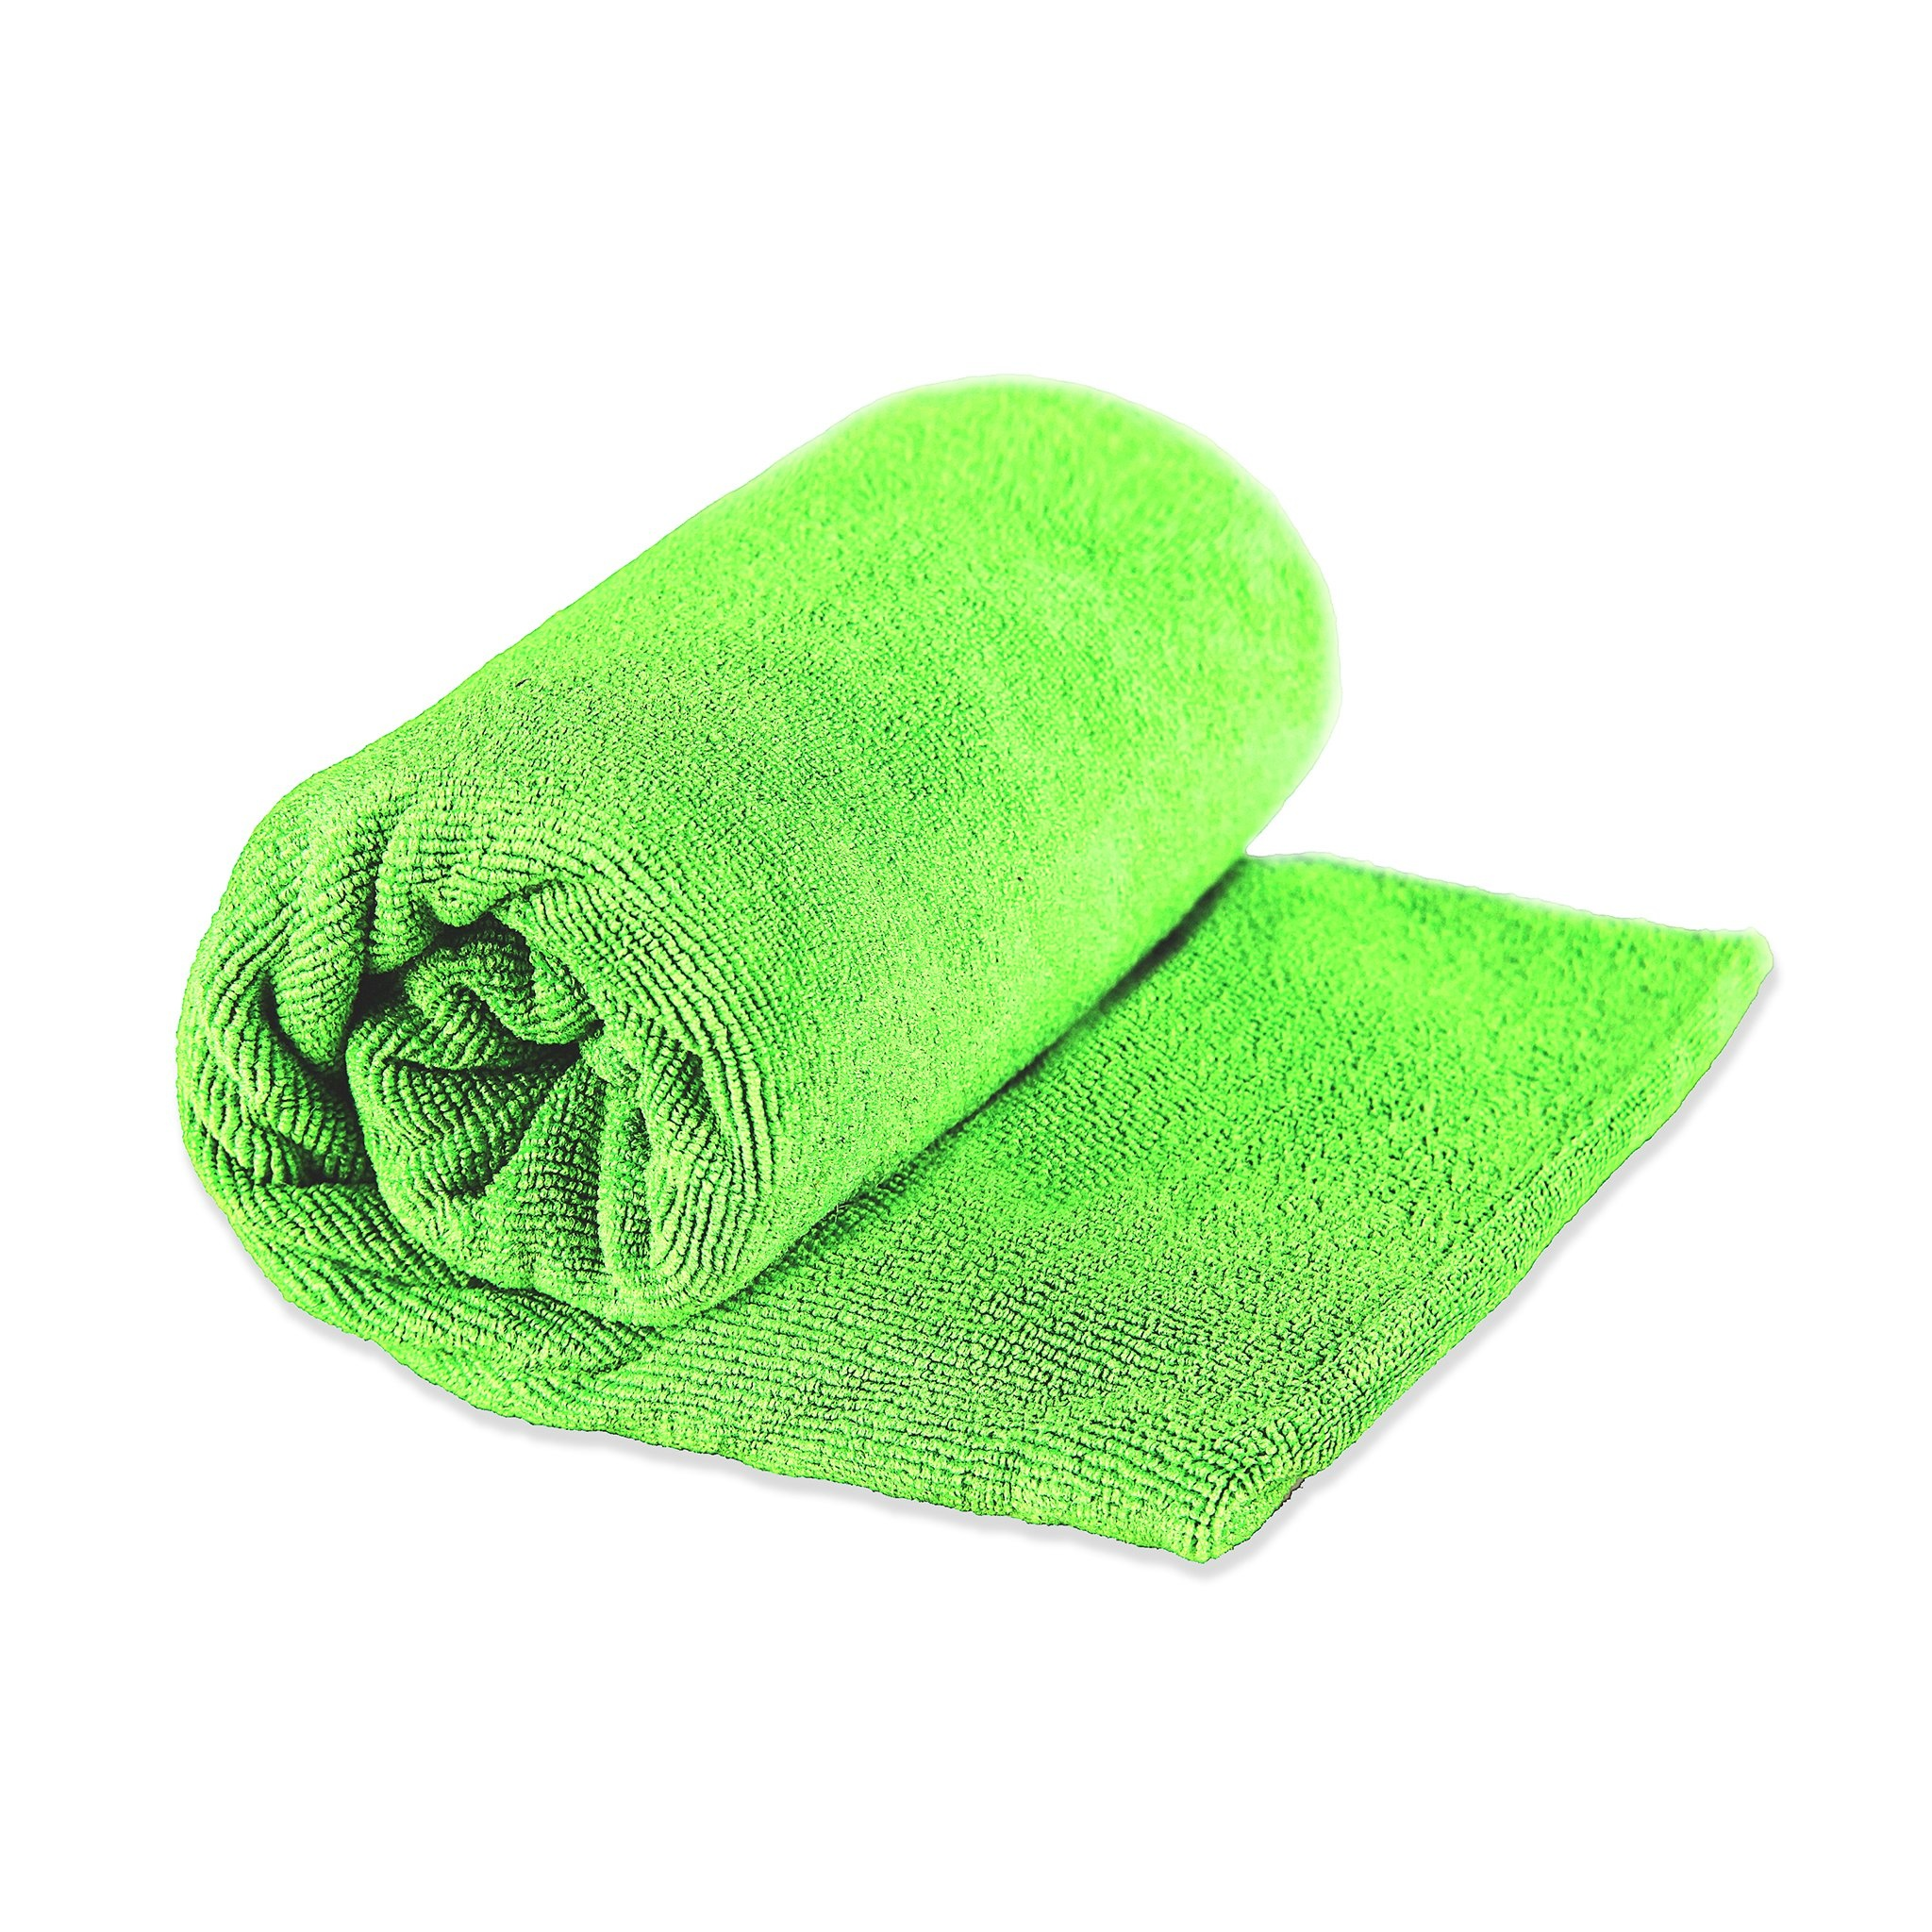 Sea to Summit Tek Towel, Large